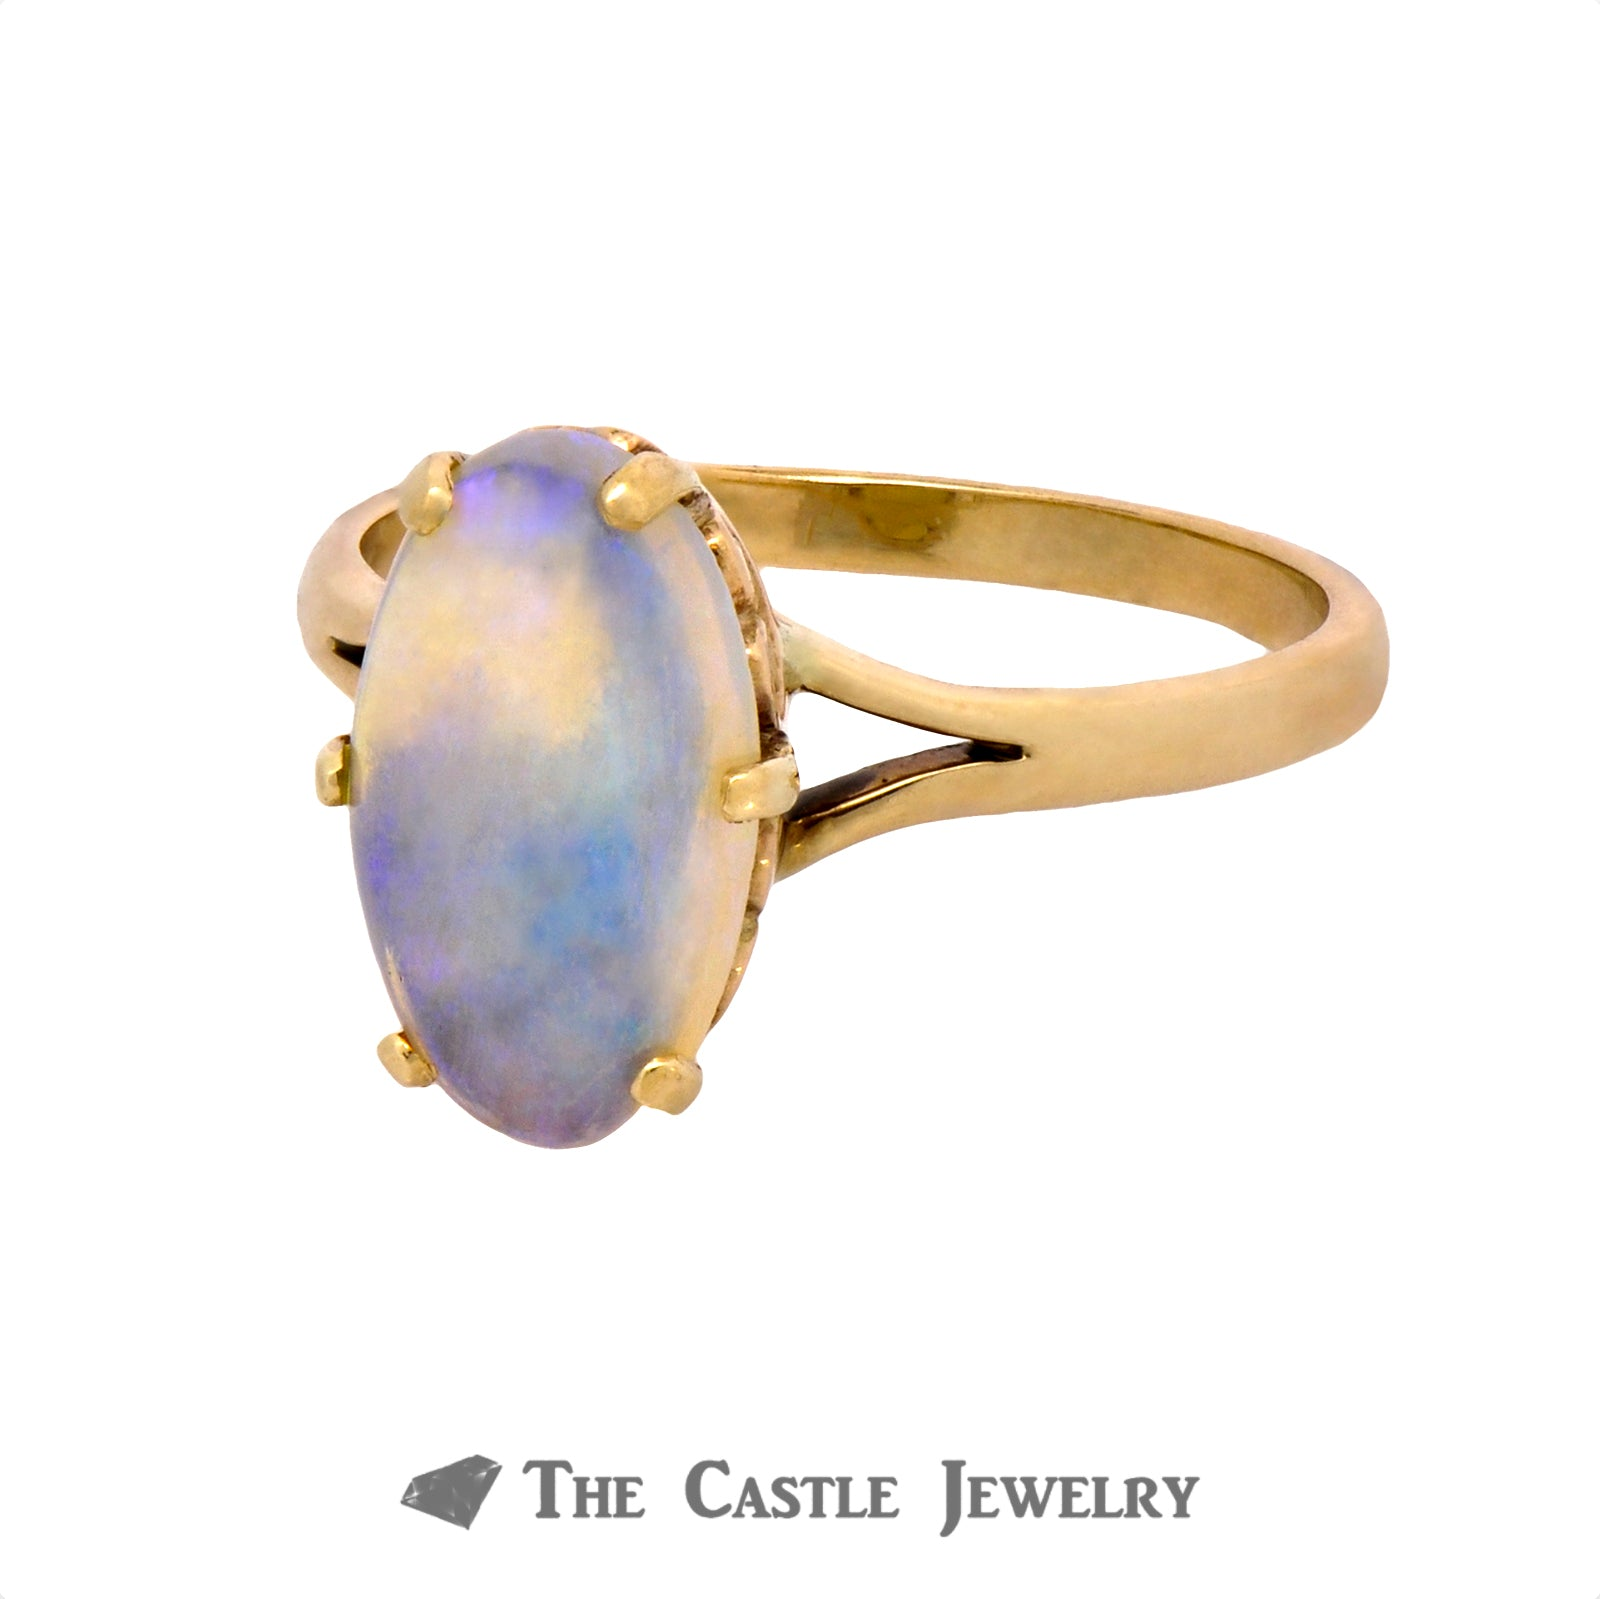 Oval Jelly Opal Ring in Six Prong Mounting Crafted in 10K Yellow Gold-2